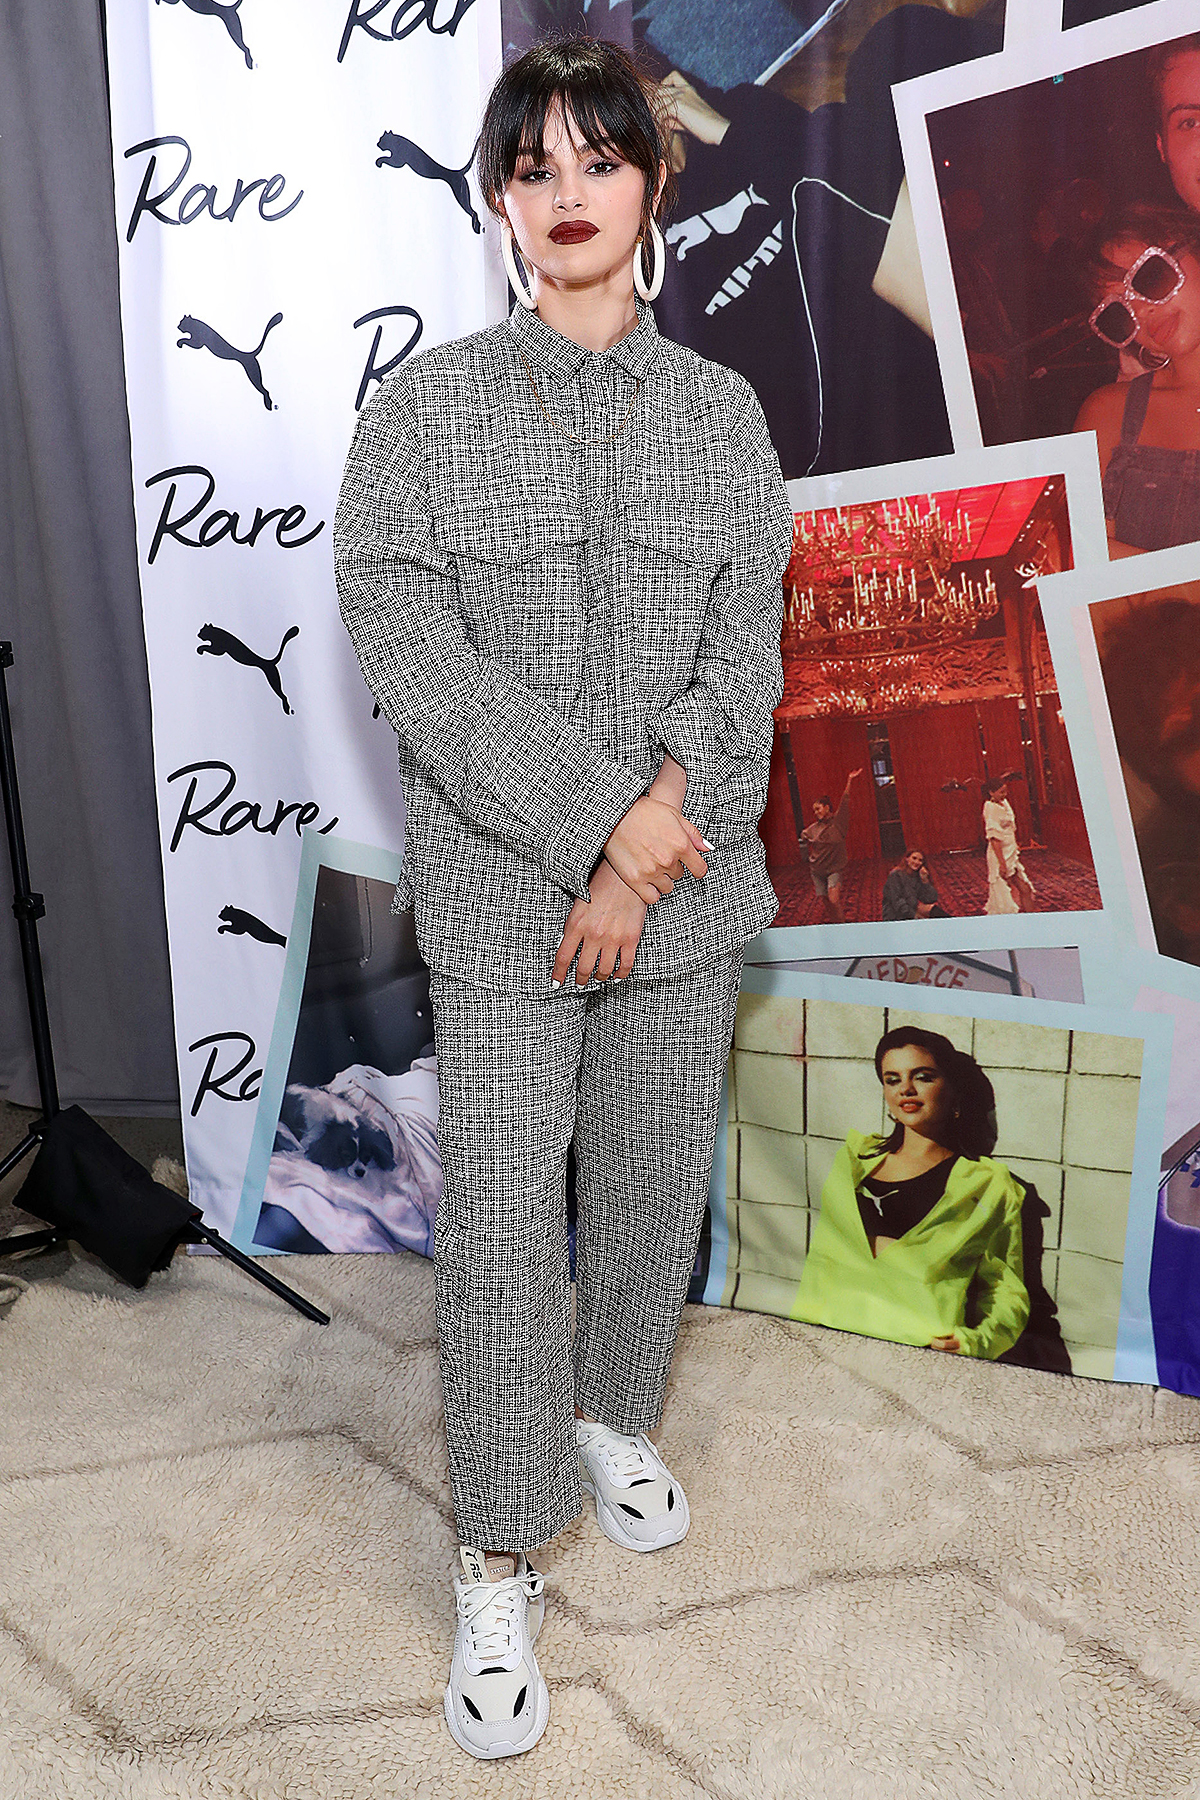 Selena Gomez poses during the Meet & Greet with Selena Gomez at PUMA Flagship on January 14, 2020 in New York City.